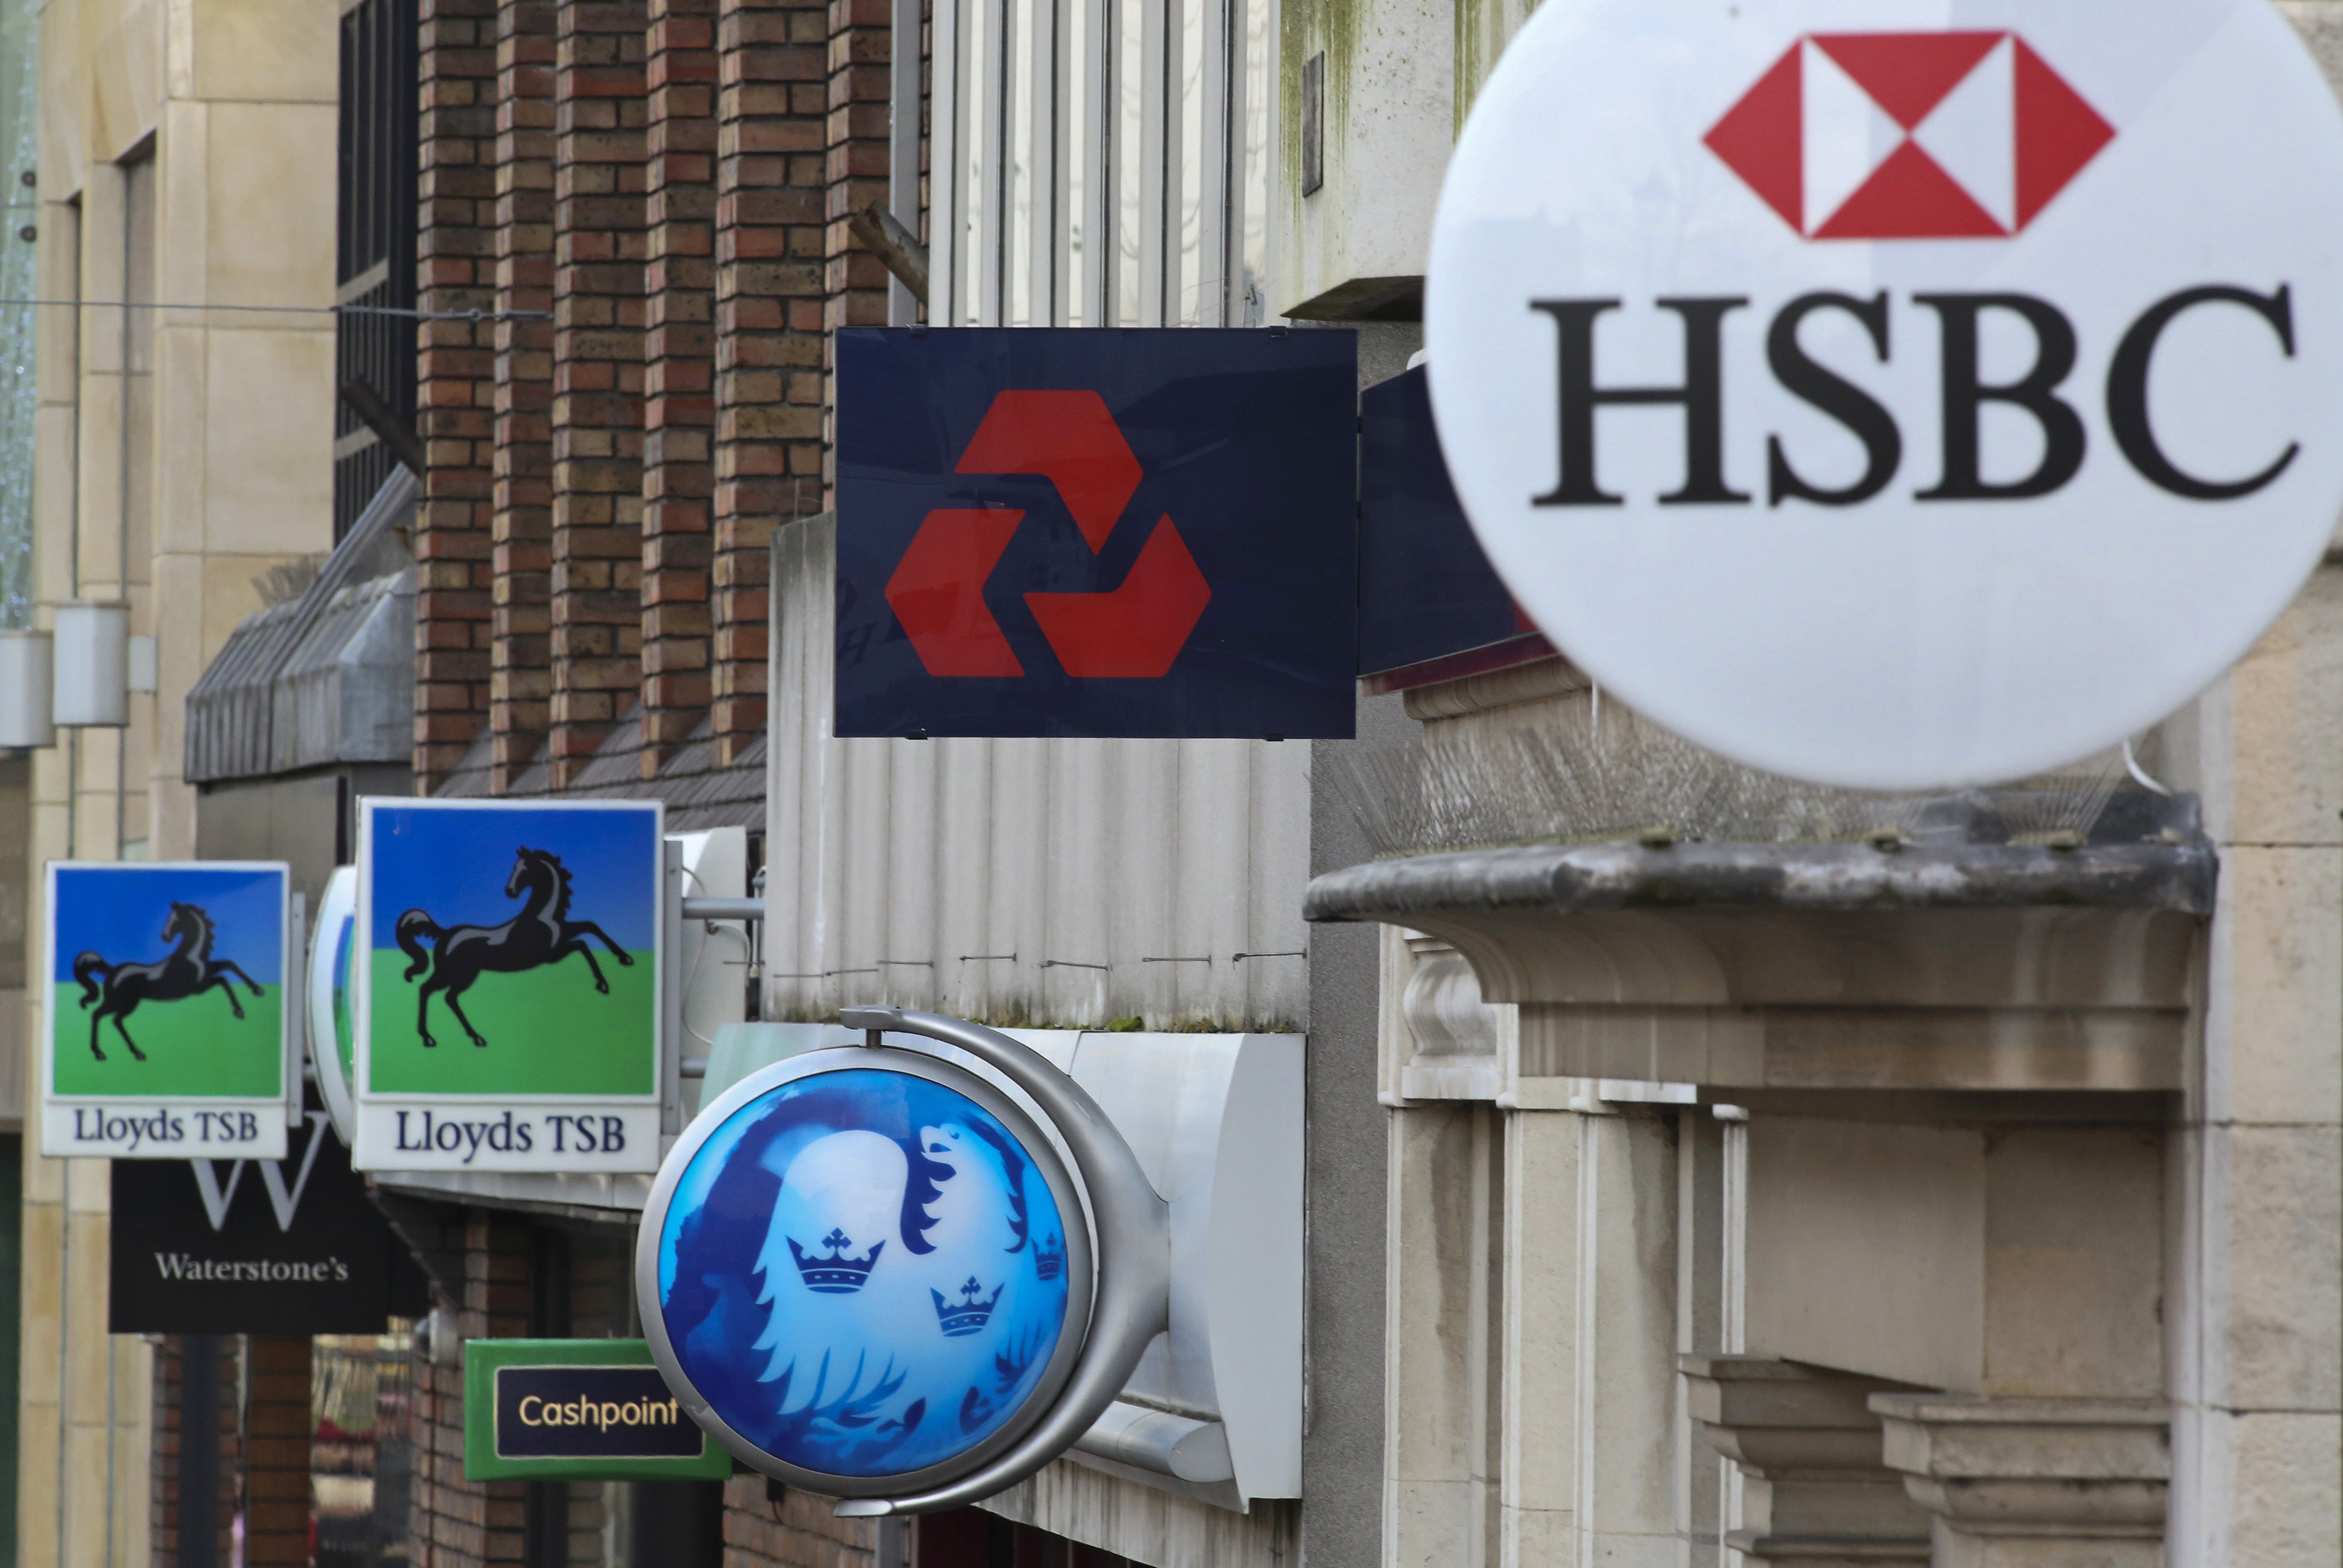 Signs sit outside branches of banks in the UK.